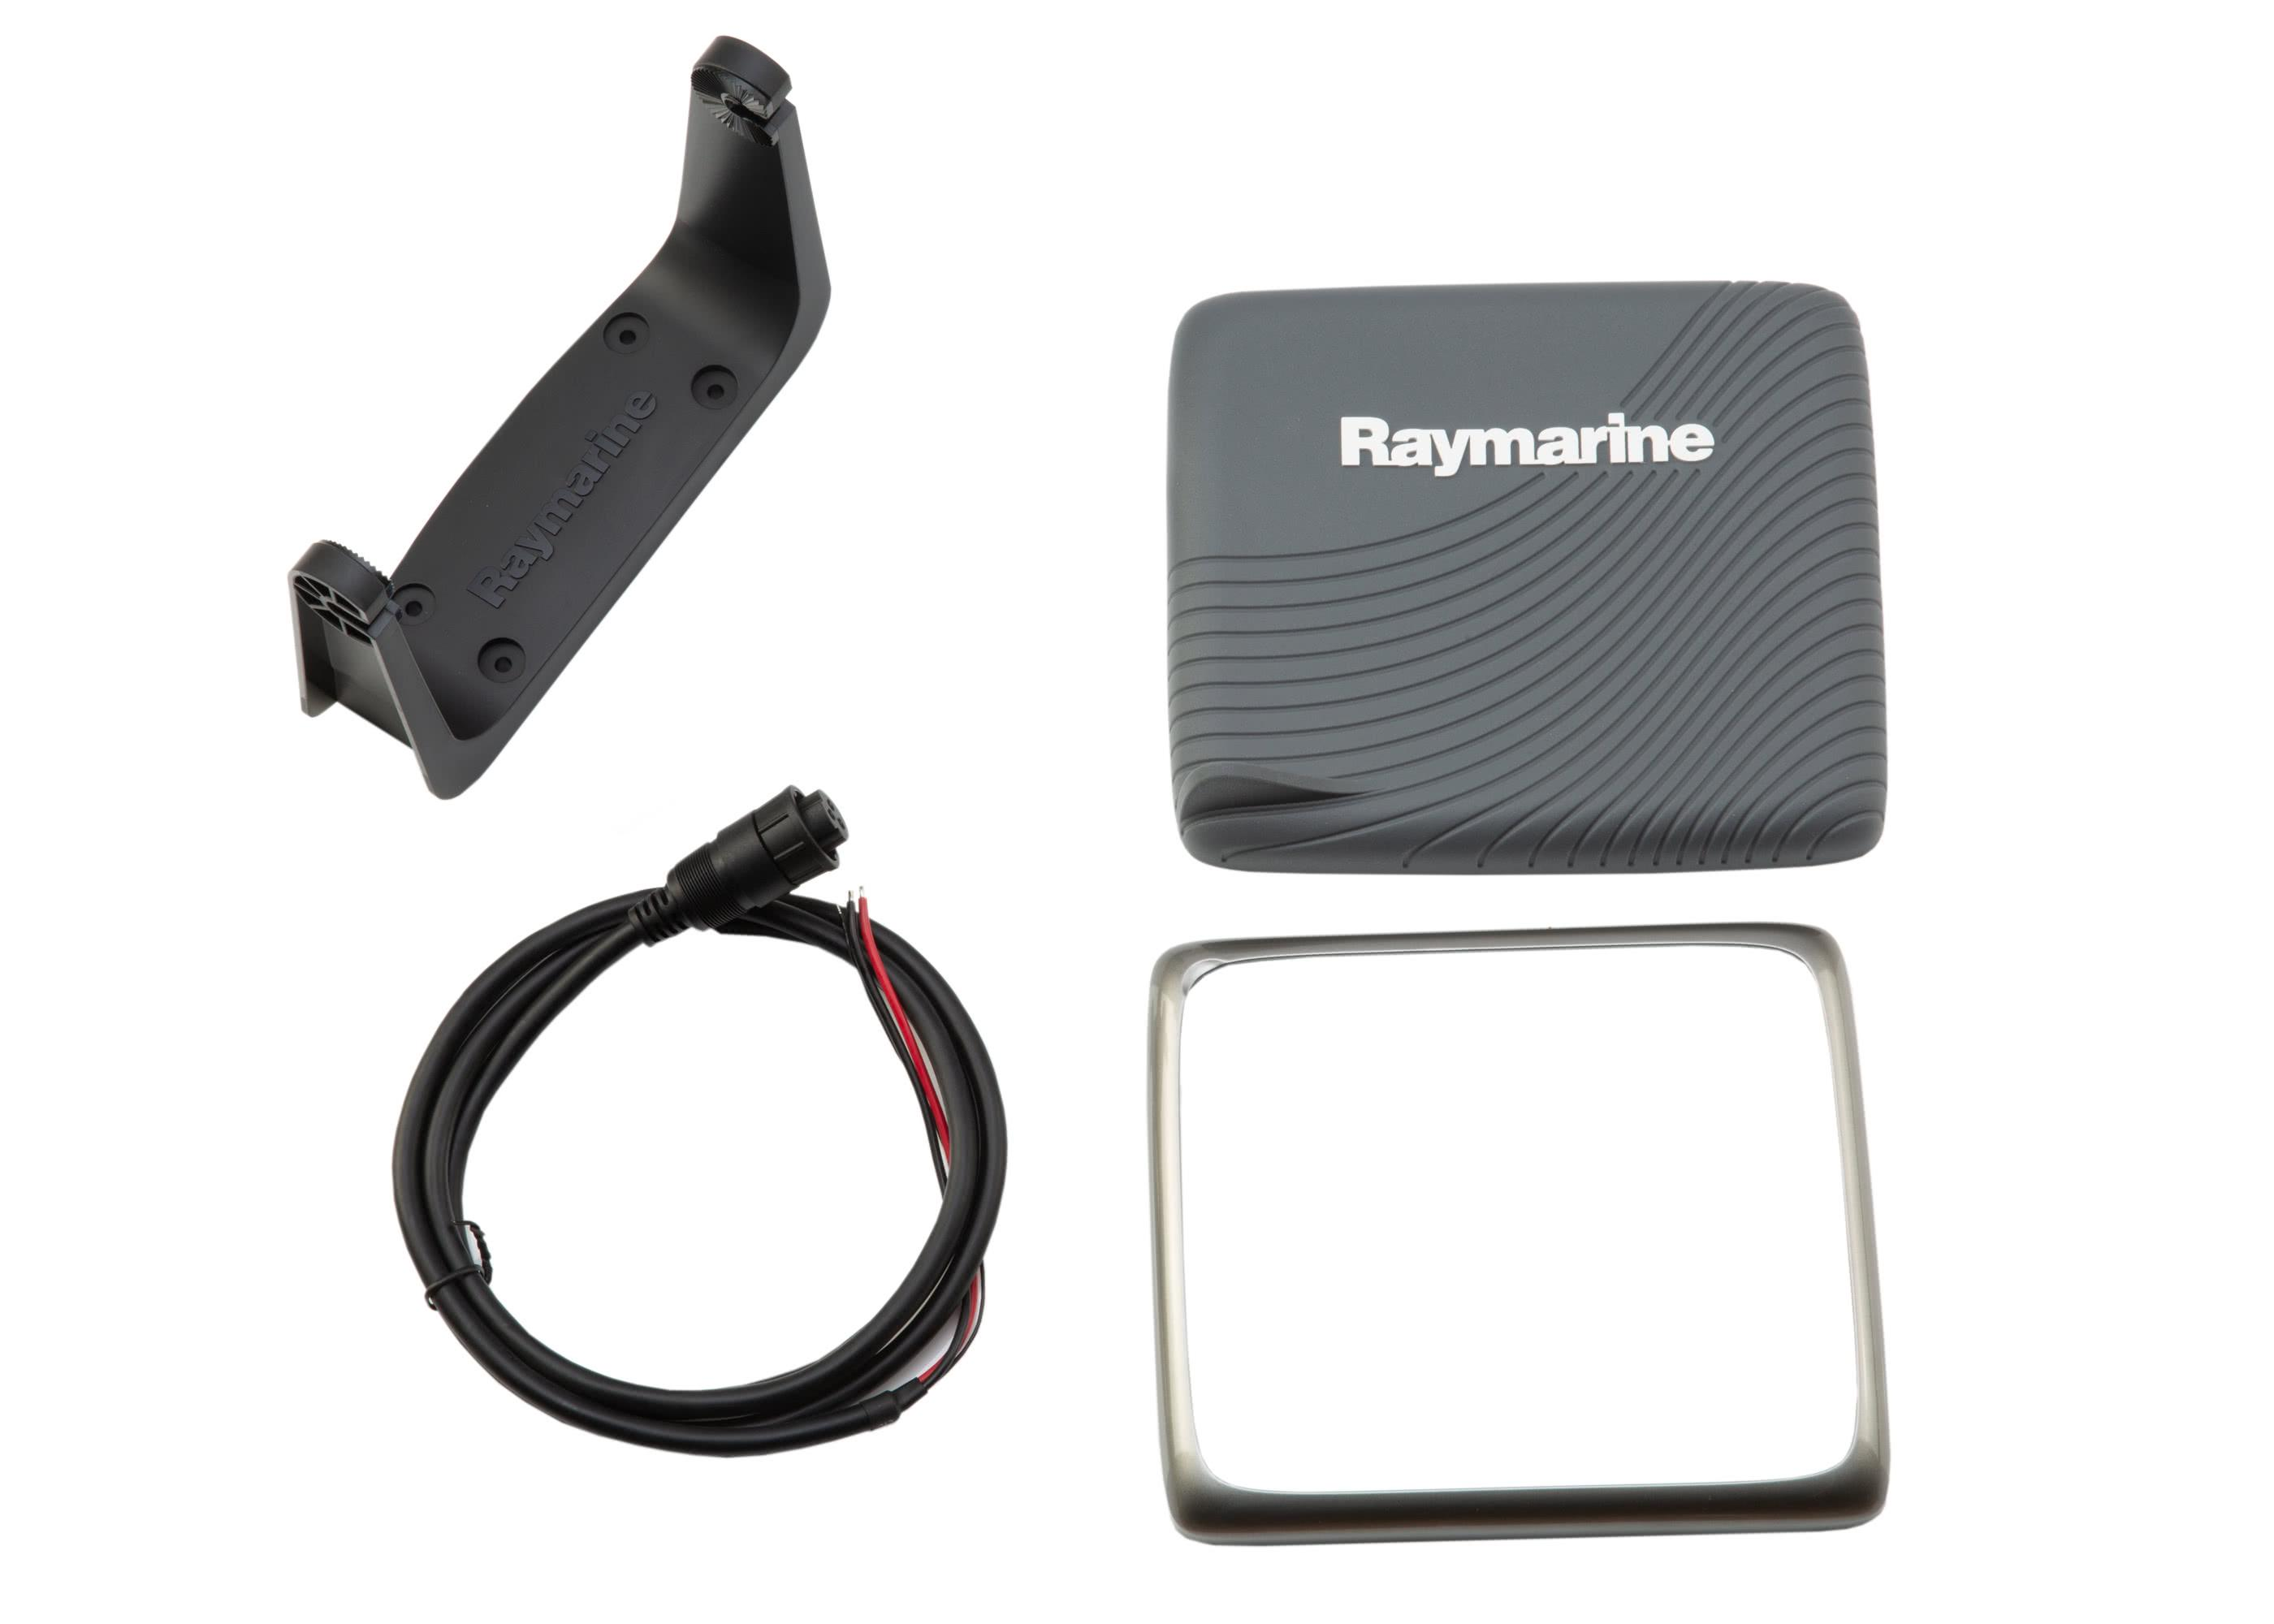 16056-Raymarine - Multifunktionsdisplay a67 WiFi.jpg